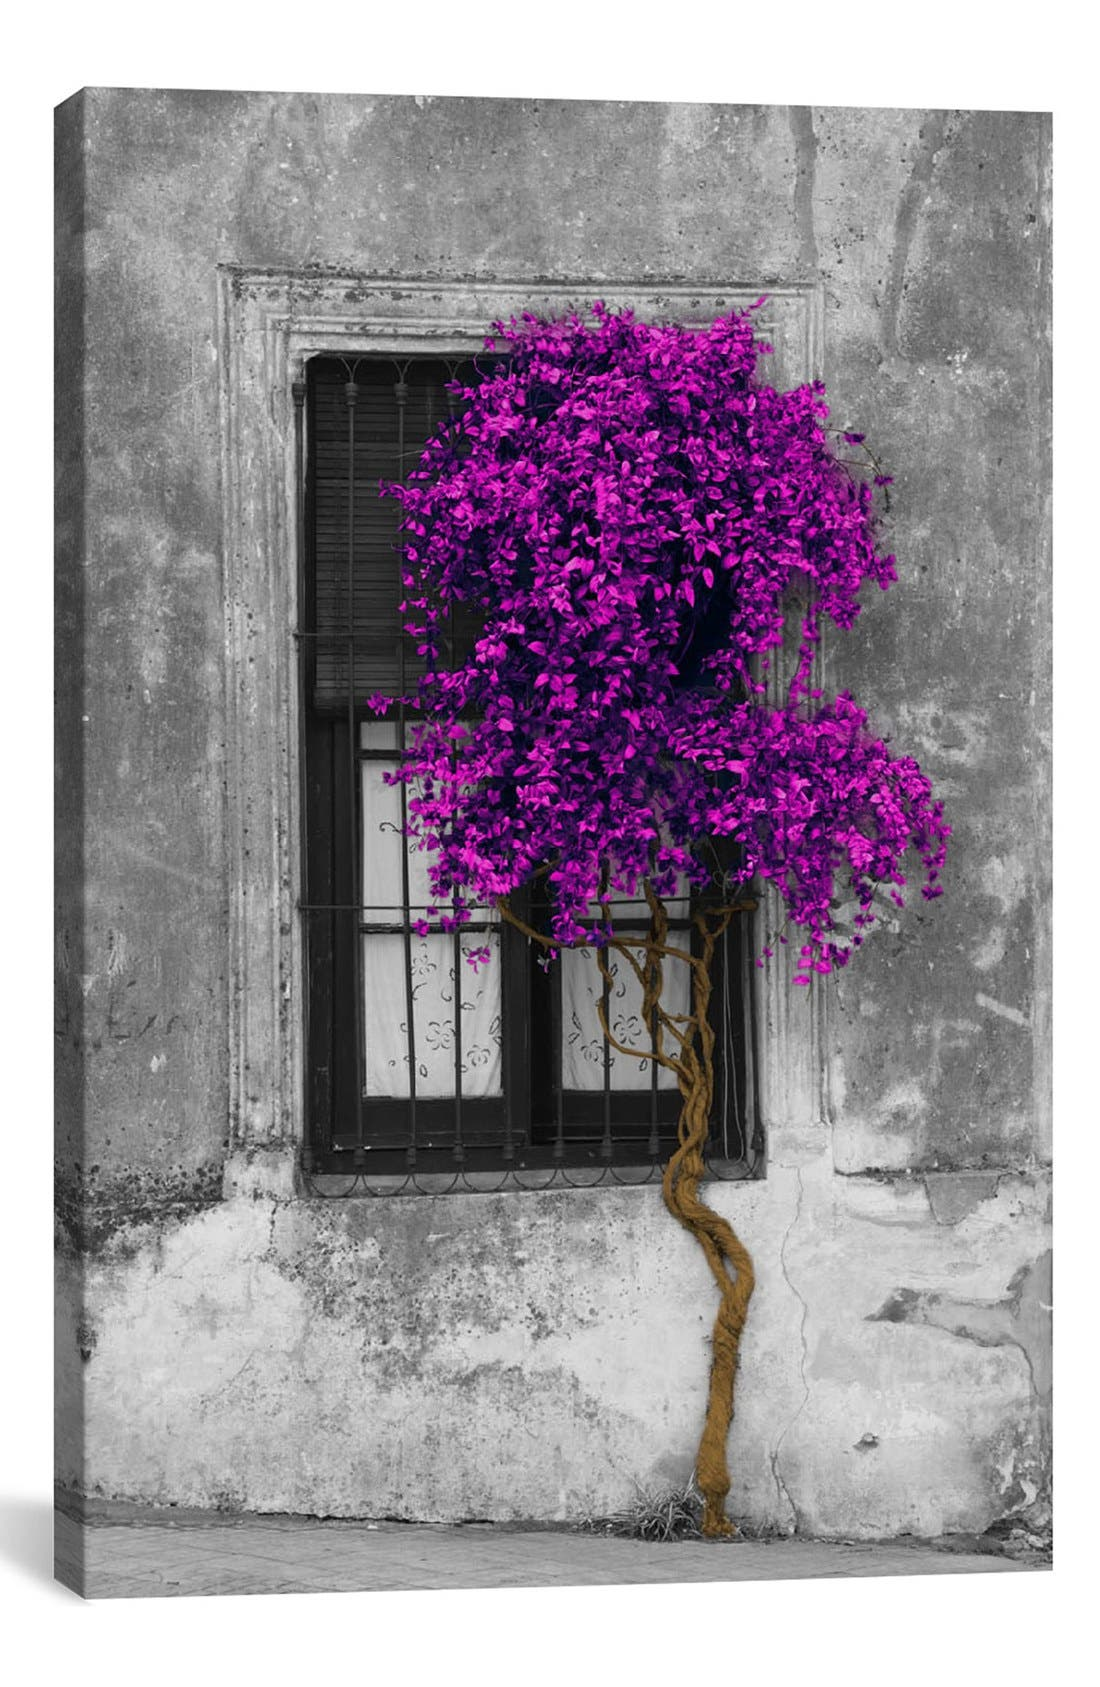 Alternate Image 1 Selected - iCanvas 'Tree in Front of Window' Giclée Print Canvas Art